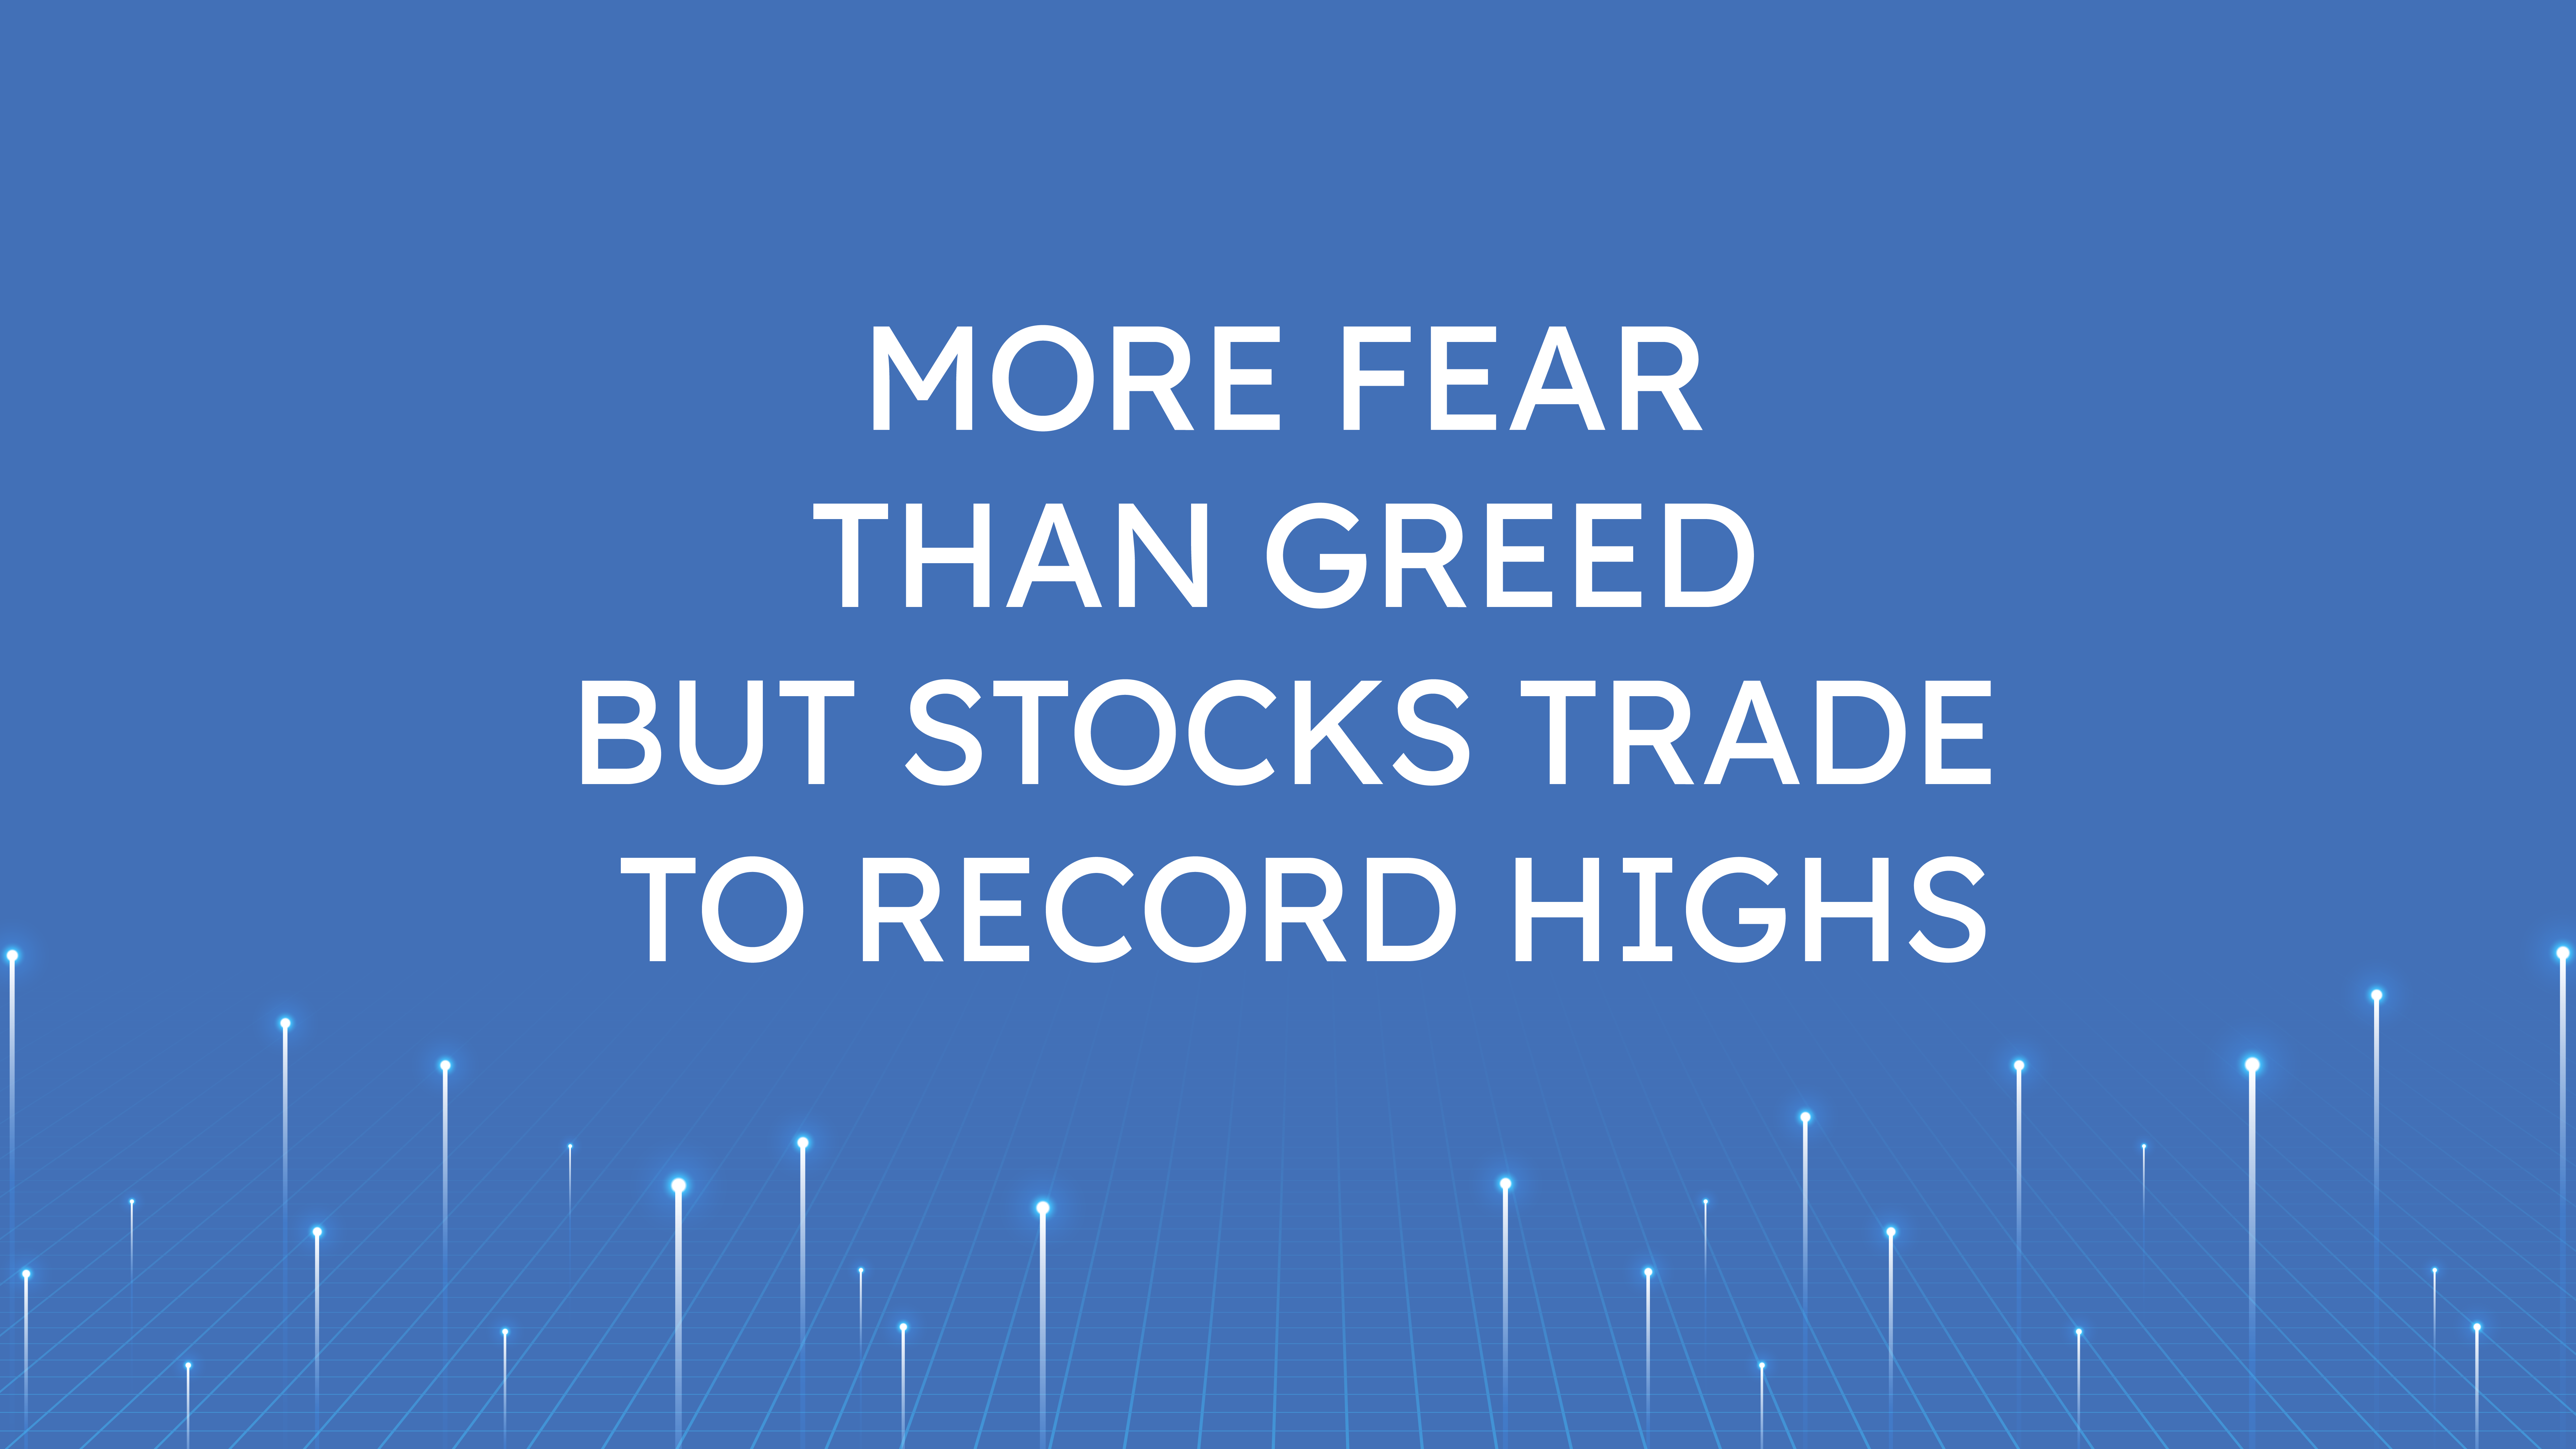 More Fear Than Greed  but Stocks Trade to Record Highs